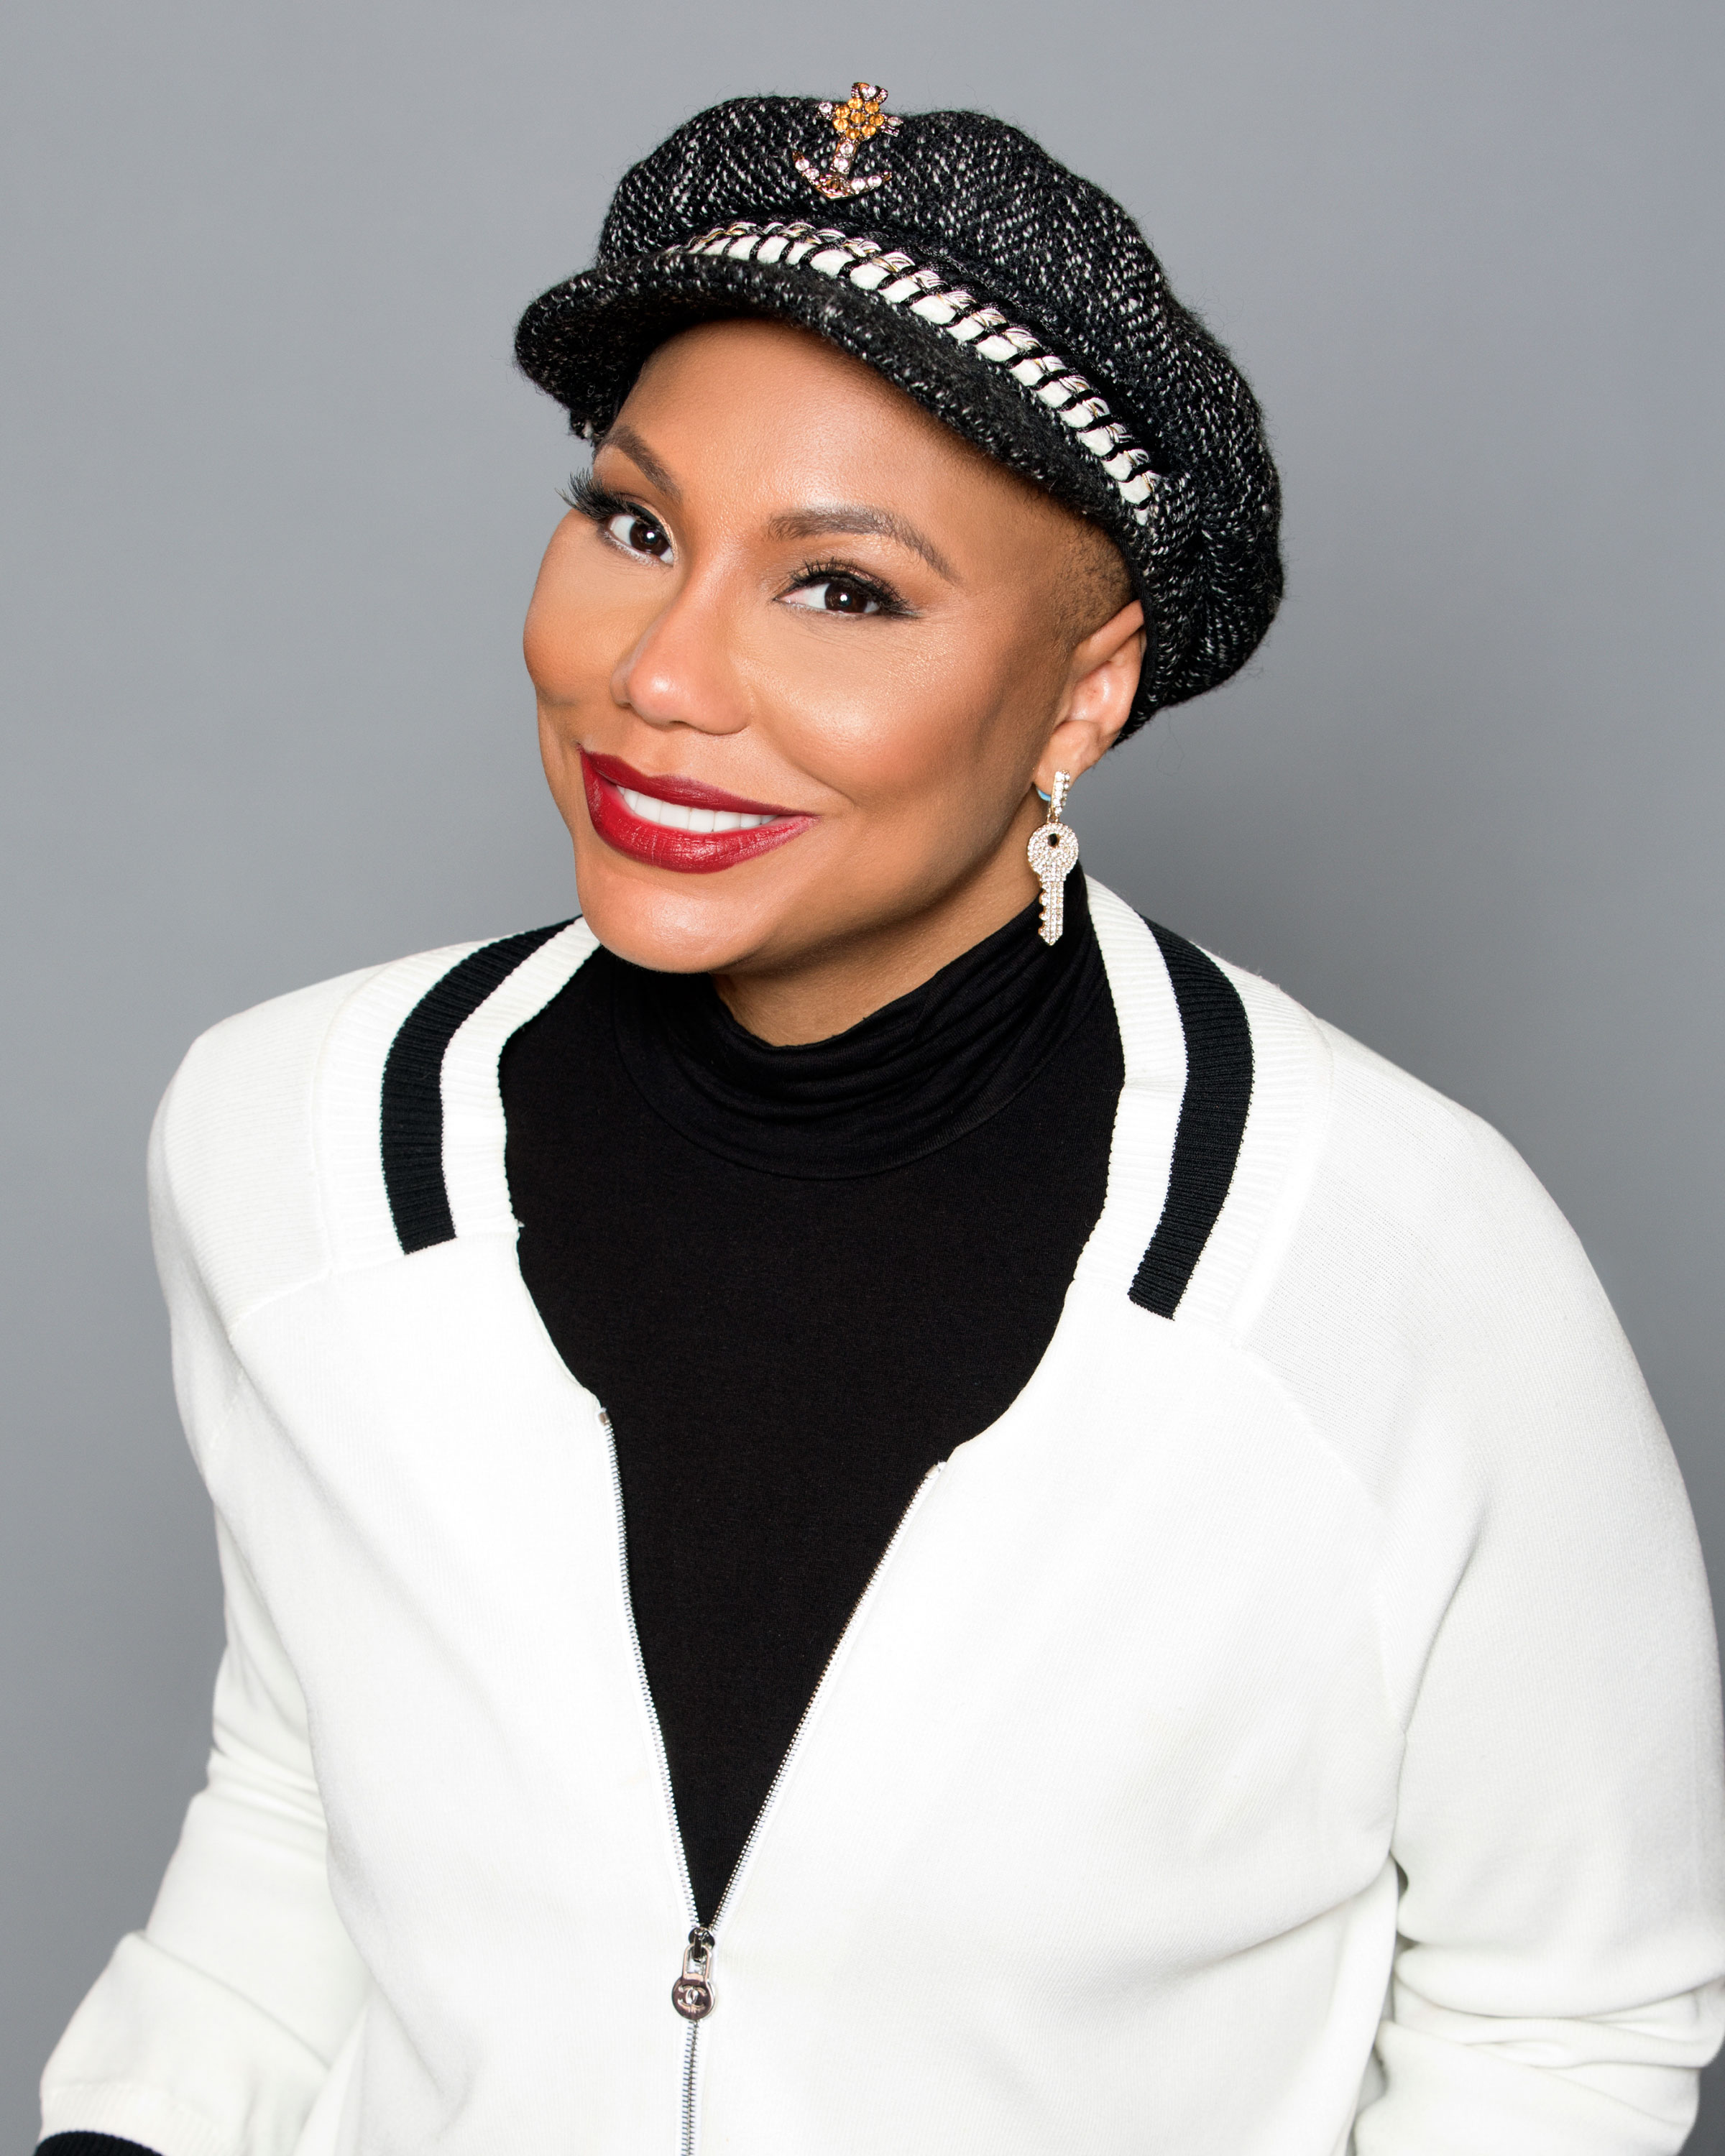 BIG-BROTHER-CELEBRITY-EDITION-Tamar Braxton - In 1990, Braxton, 41, founded the R&B singing group The Braxtons with her sisters. She went on to become a cohost on The Real from 2013 to 2016 and stars on We TV's Braxton Family Values .